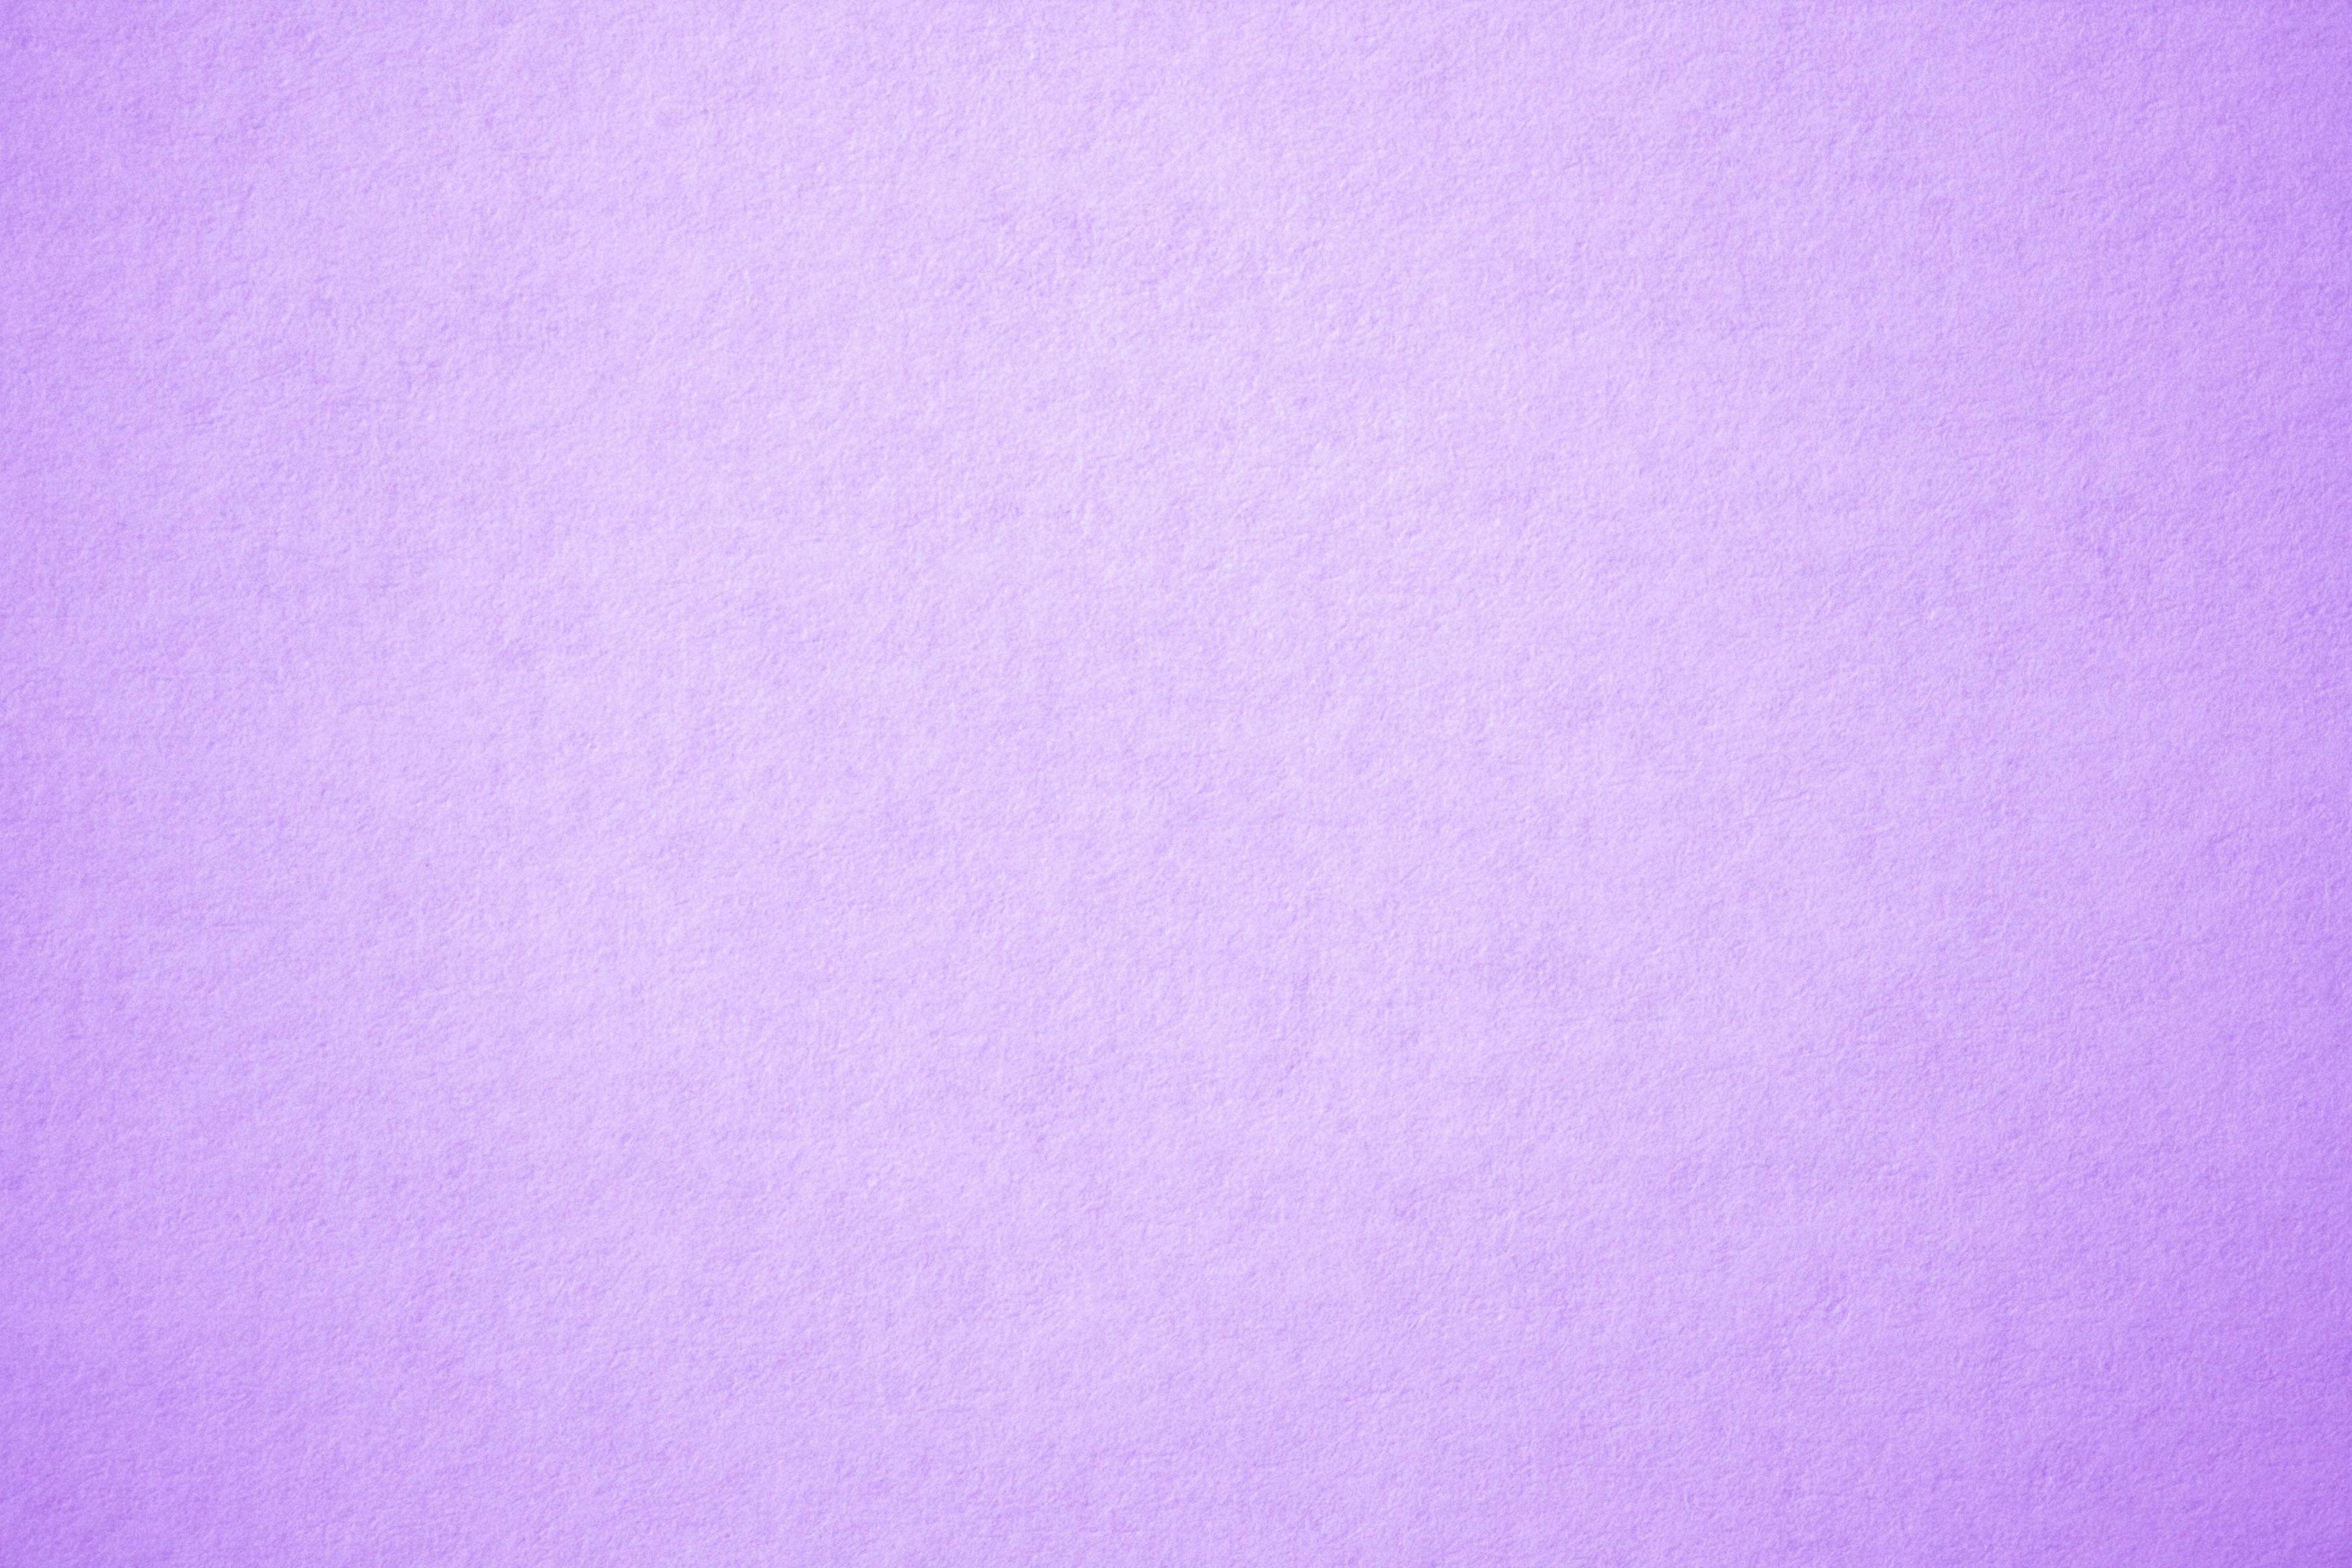 Purple cute tumblr backgrounds Pink 50 Pastel Purple Wallpaper Wallpaper Cave Tumblr Wallpapers Purple Wallpaper Cave